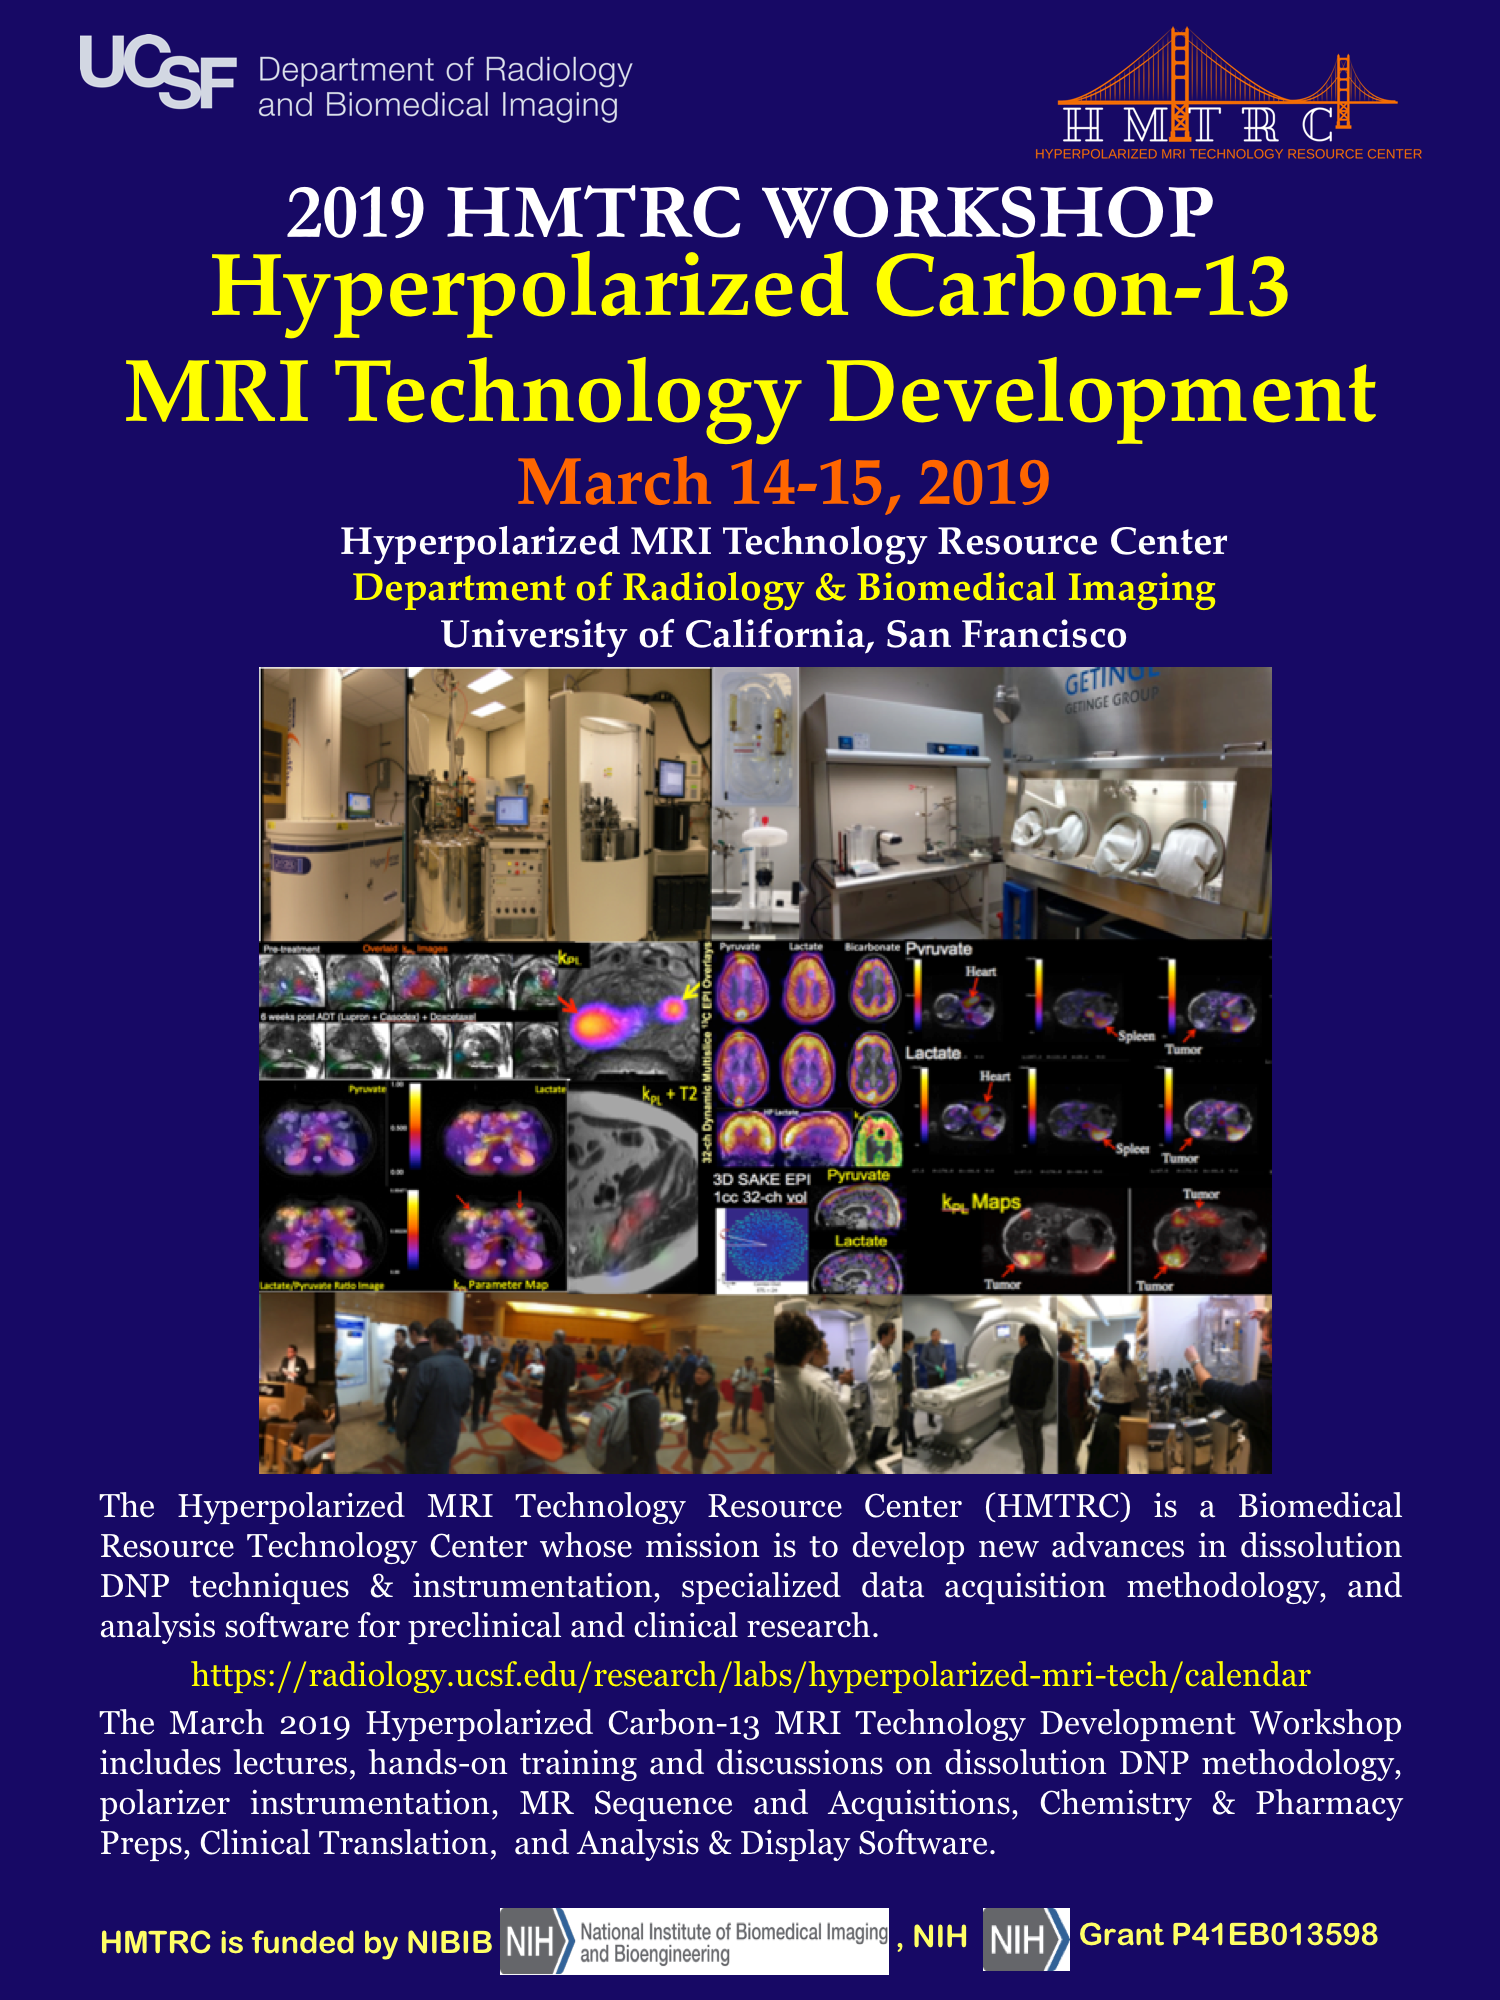 2018 UCSF HMTRC Workshop